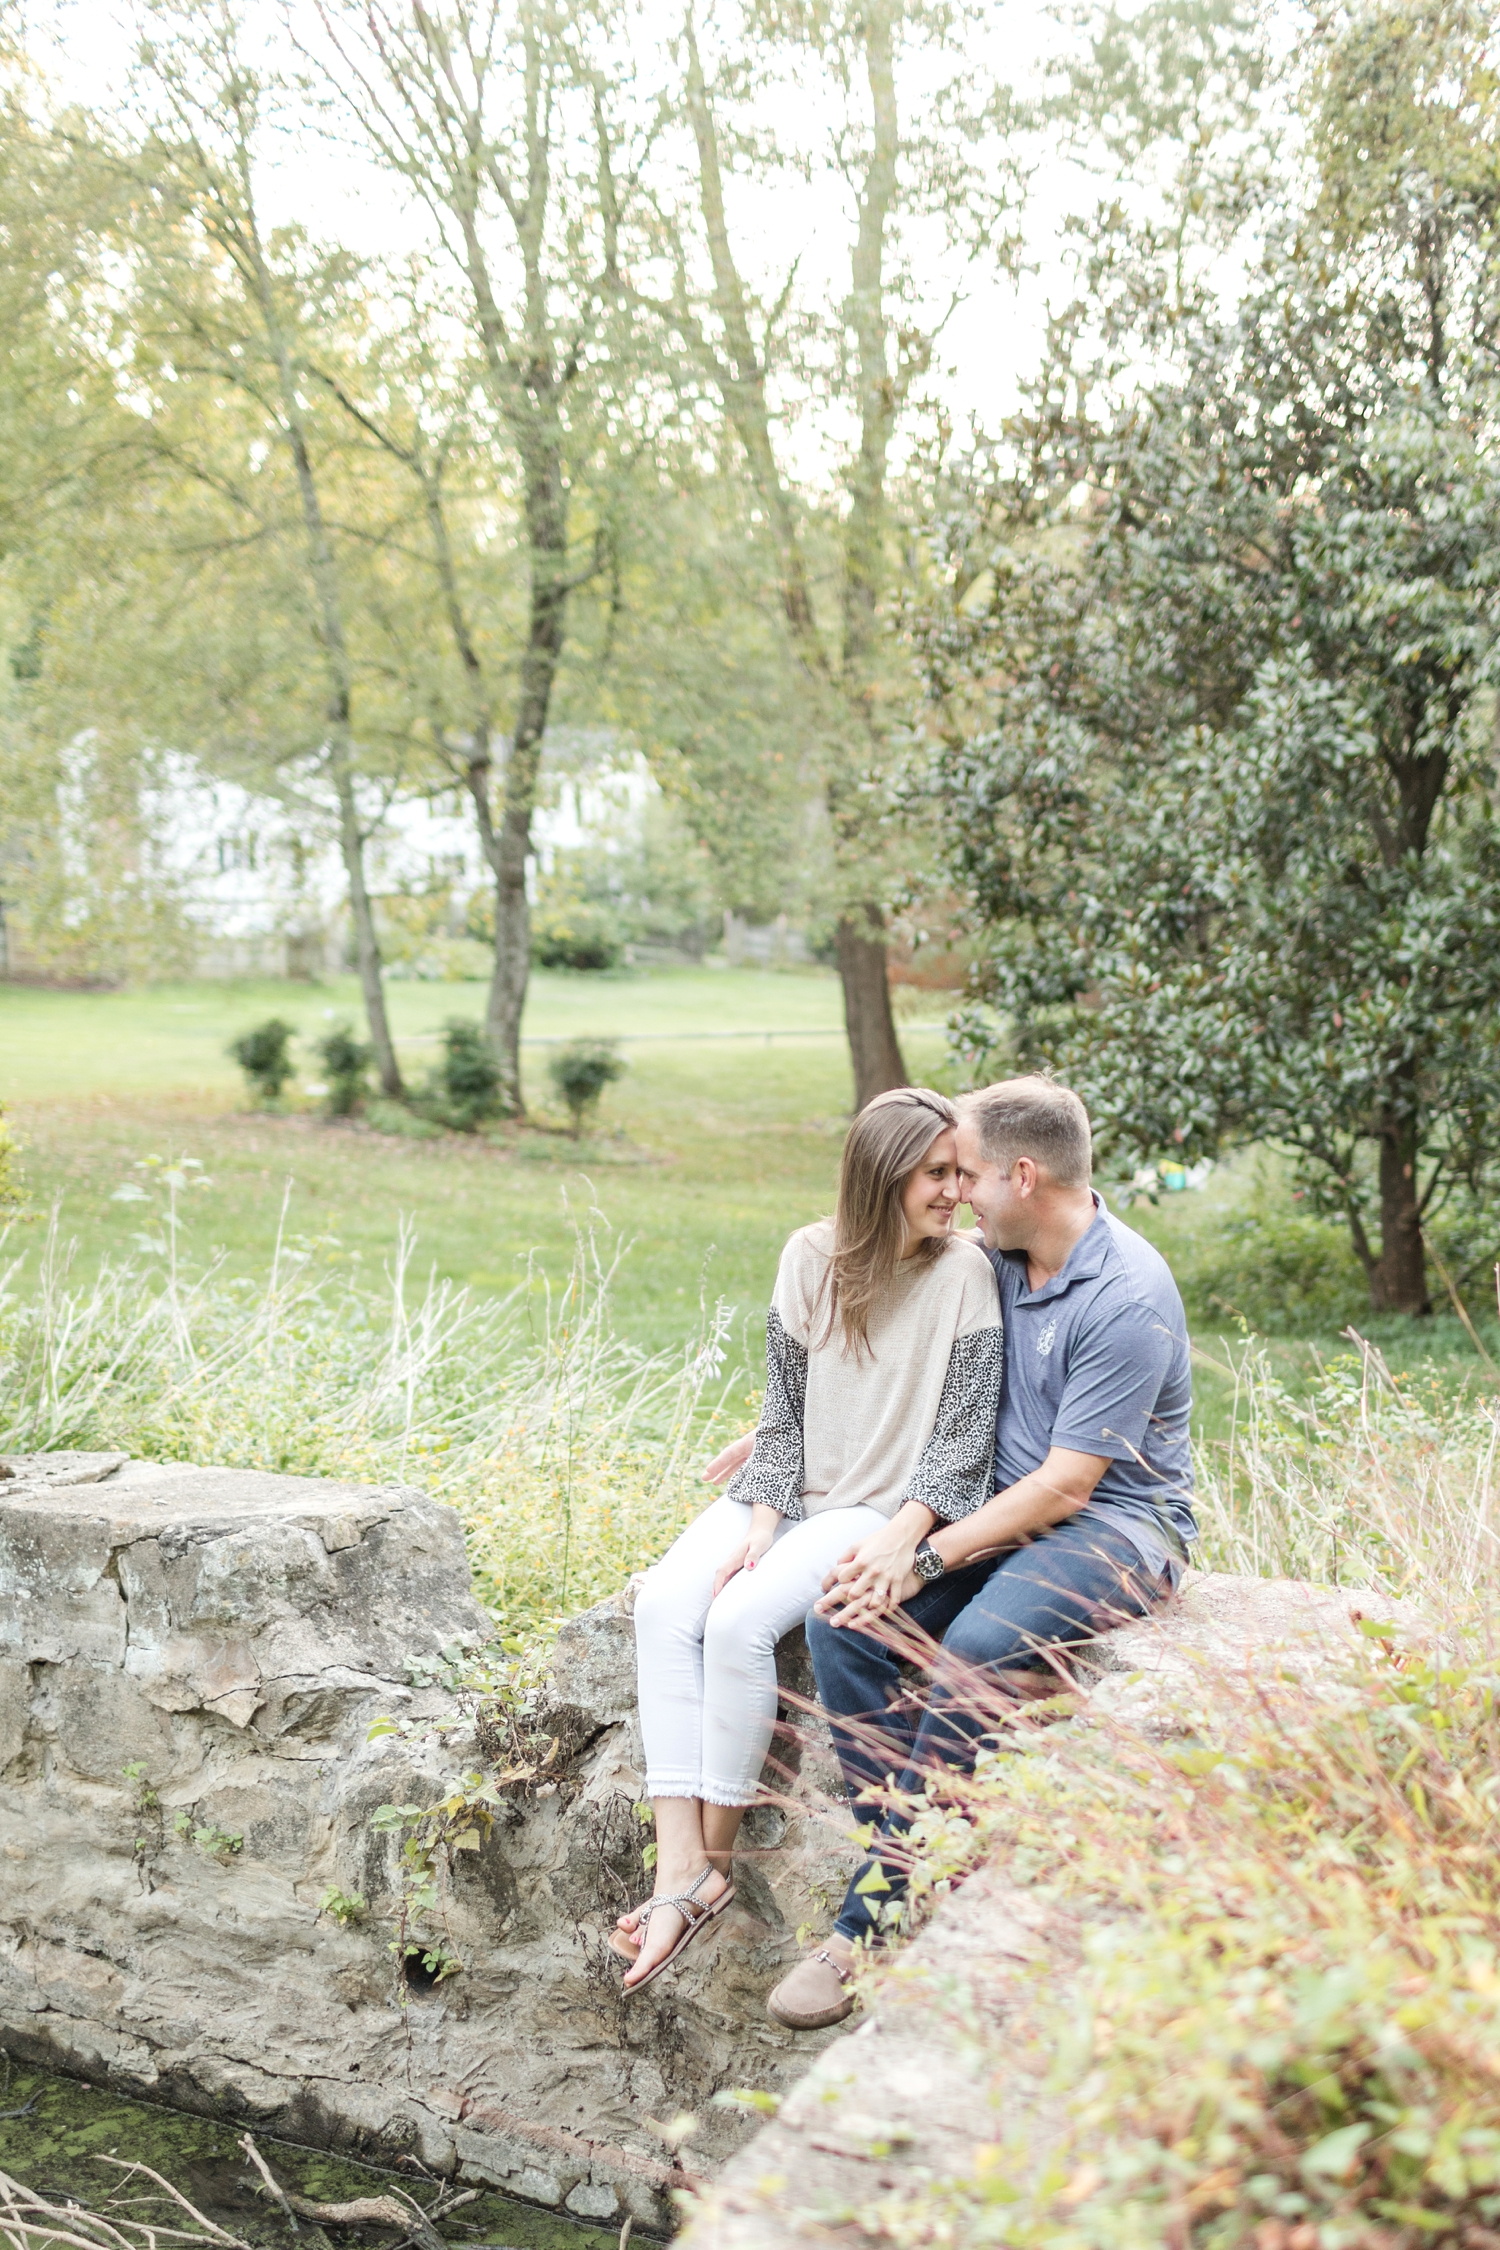 Loved taking photos in their backyard!